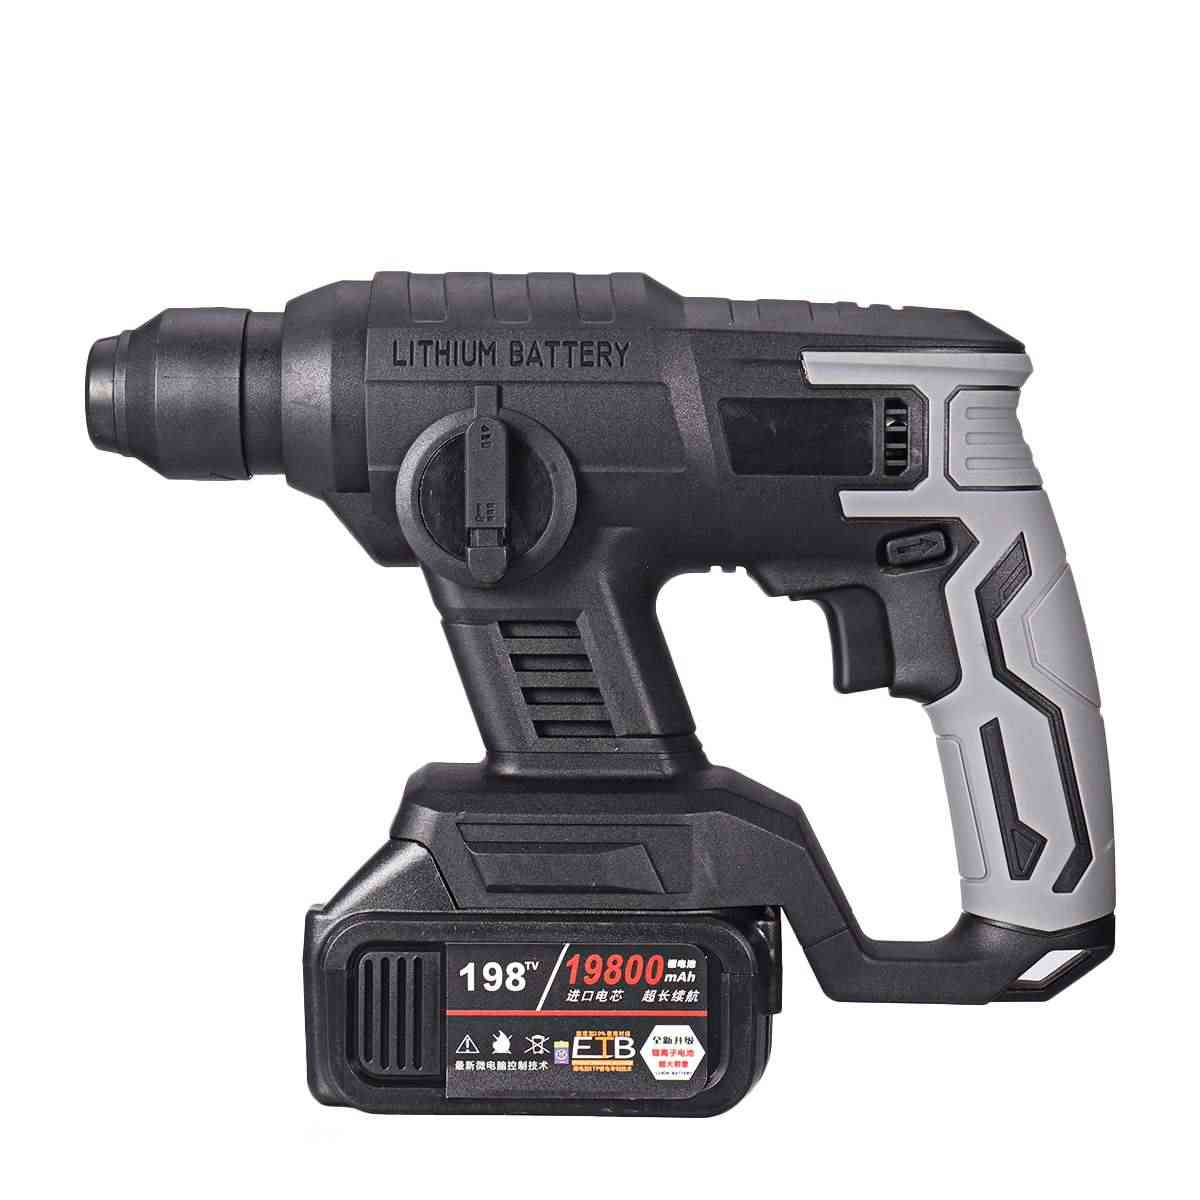 Multifunction Electric Heavy Duty Hammer Impact Power Drill Tool